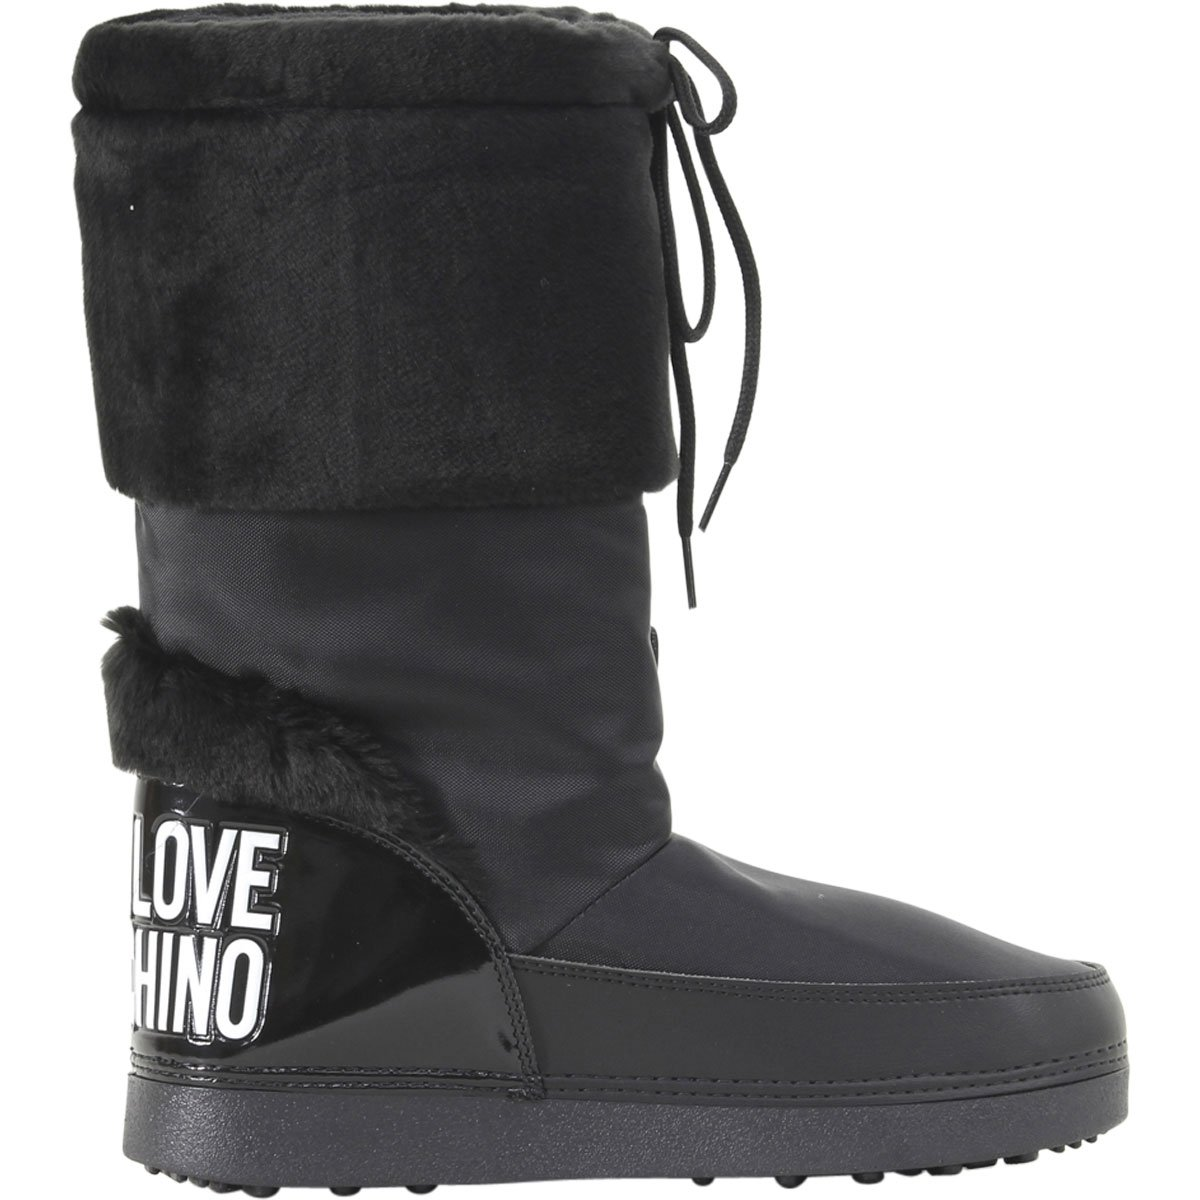 Love Moschino Women's Moon Boots Black 41 M EU by Love Moschino (Image #4)